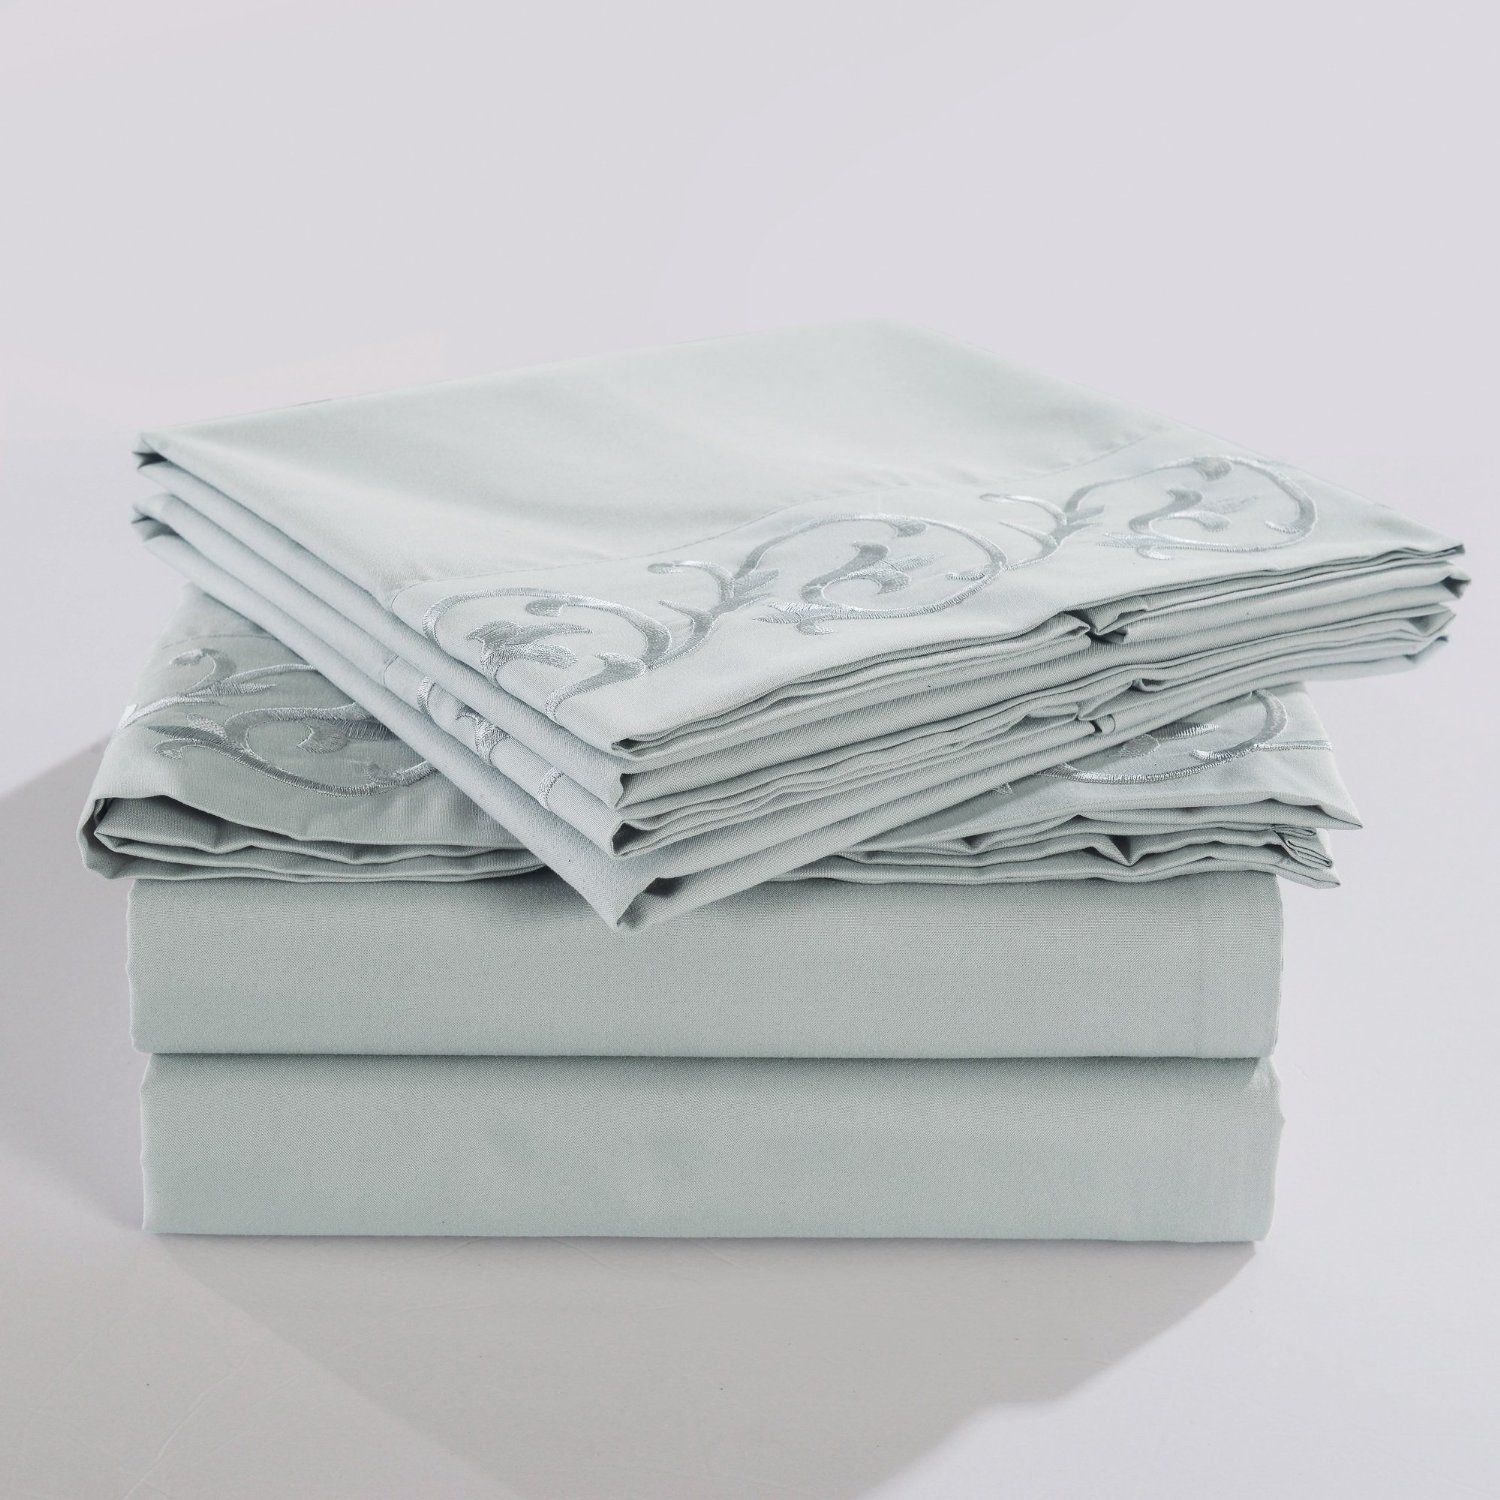 4-Piece Bed Sheet Set Queen, Light Grey Scroll